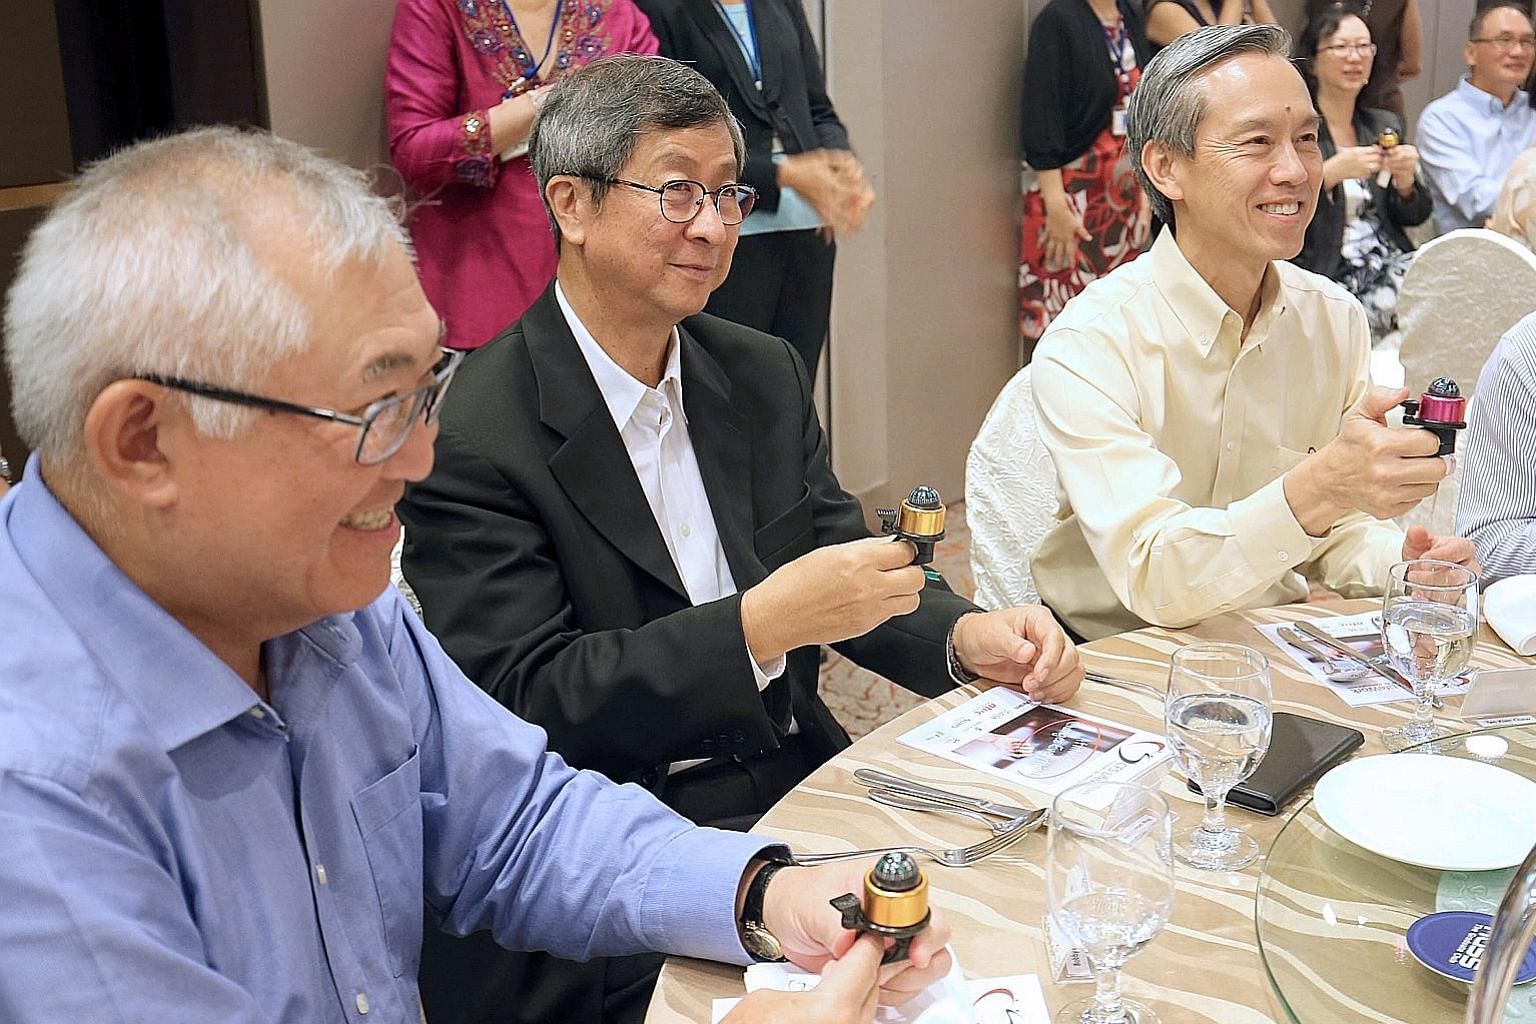 Former labour chief Lim Boon Heng (centre), with FairPrice chairman Bobby Chin (far left) and Centre For Seniors chairman Tan Kian Chew, ringing a compass bell yesterday to launch a training programme by the Centre For Seniors.